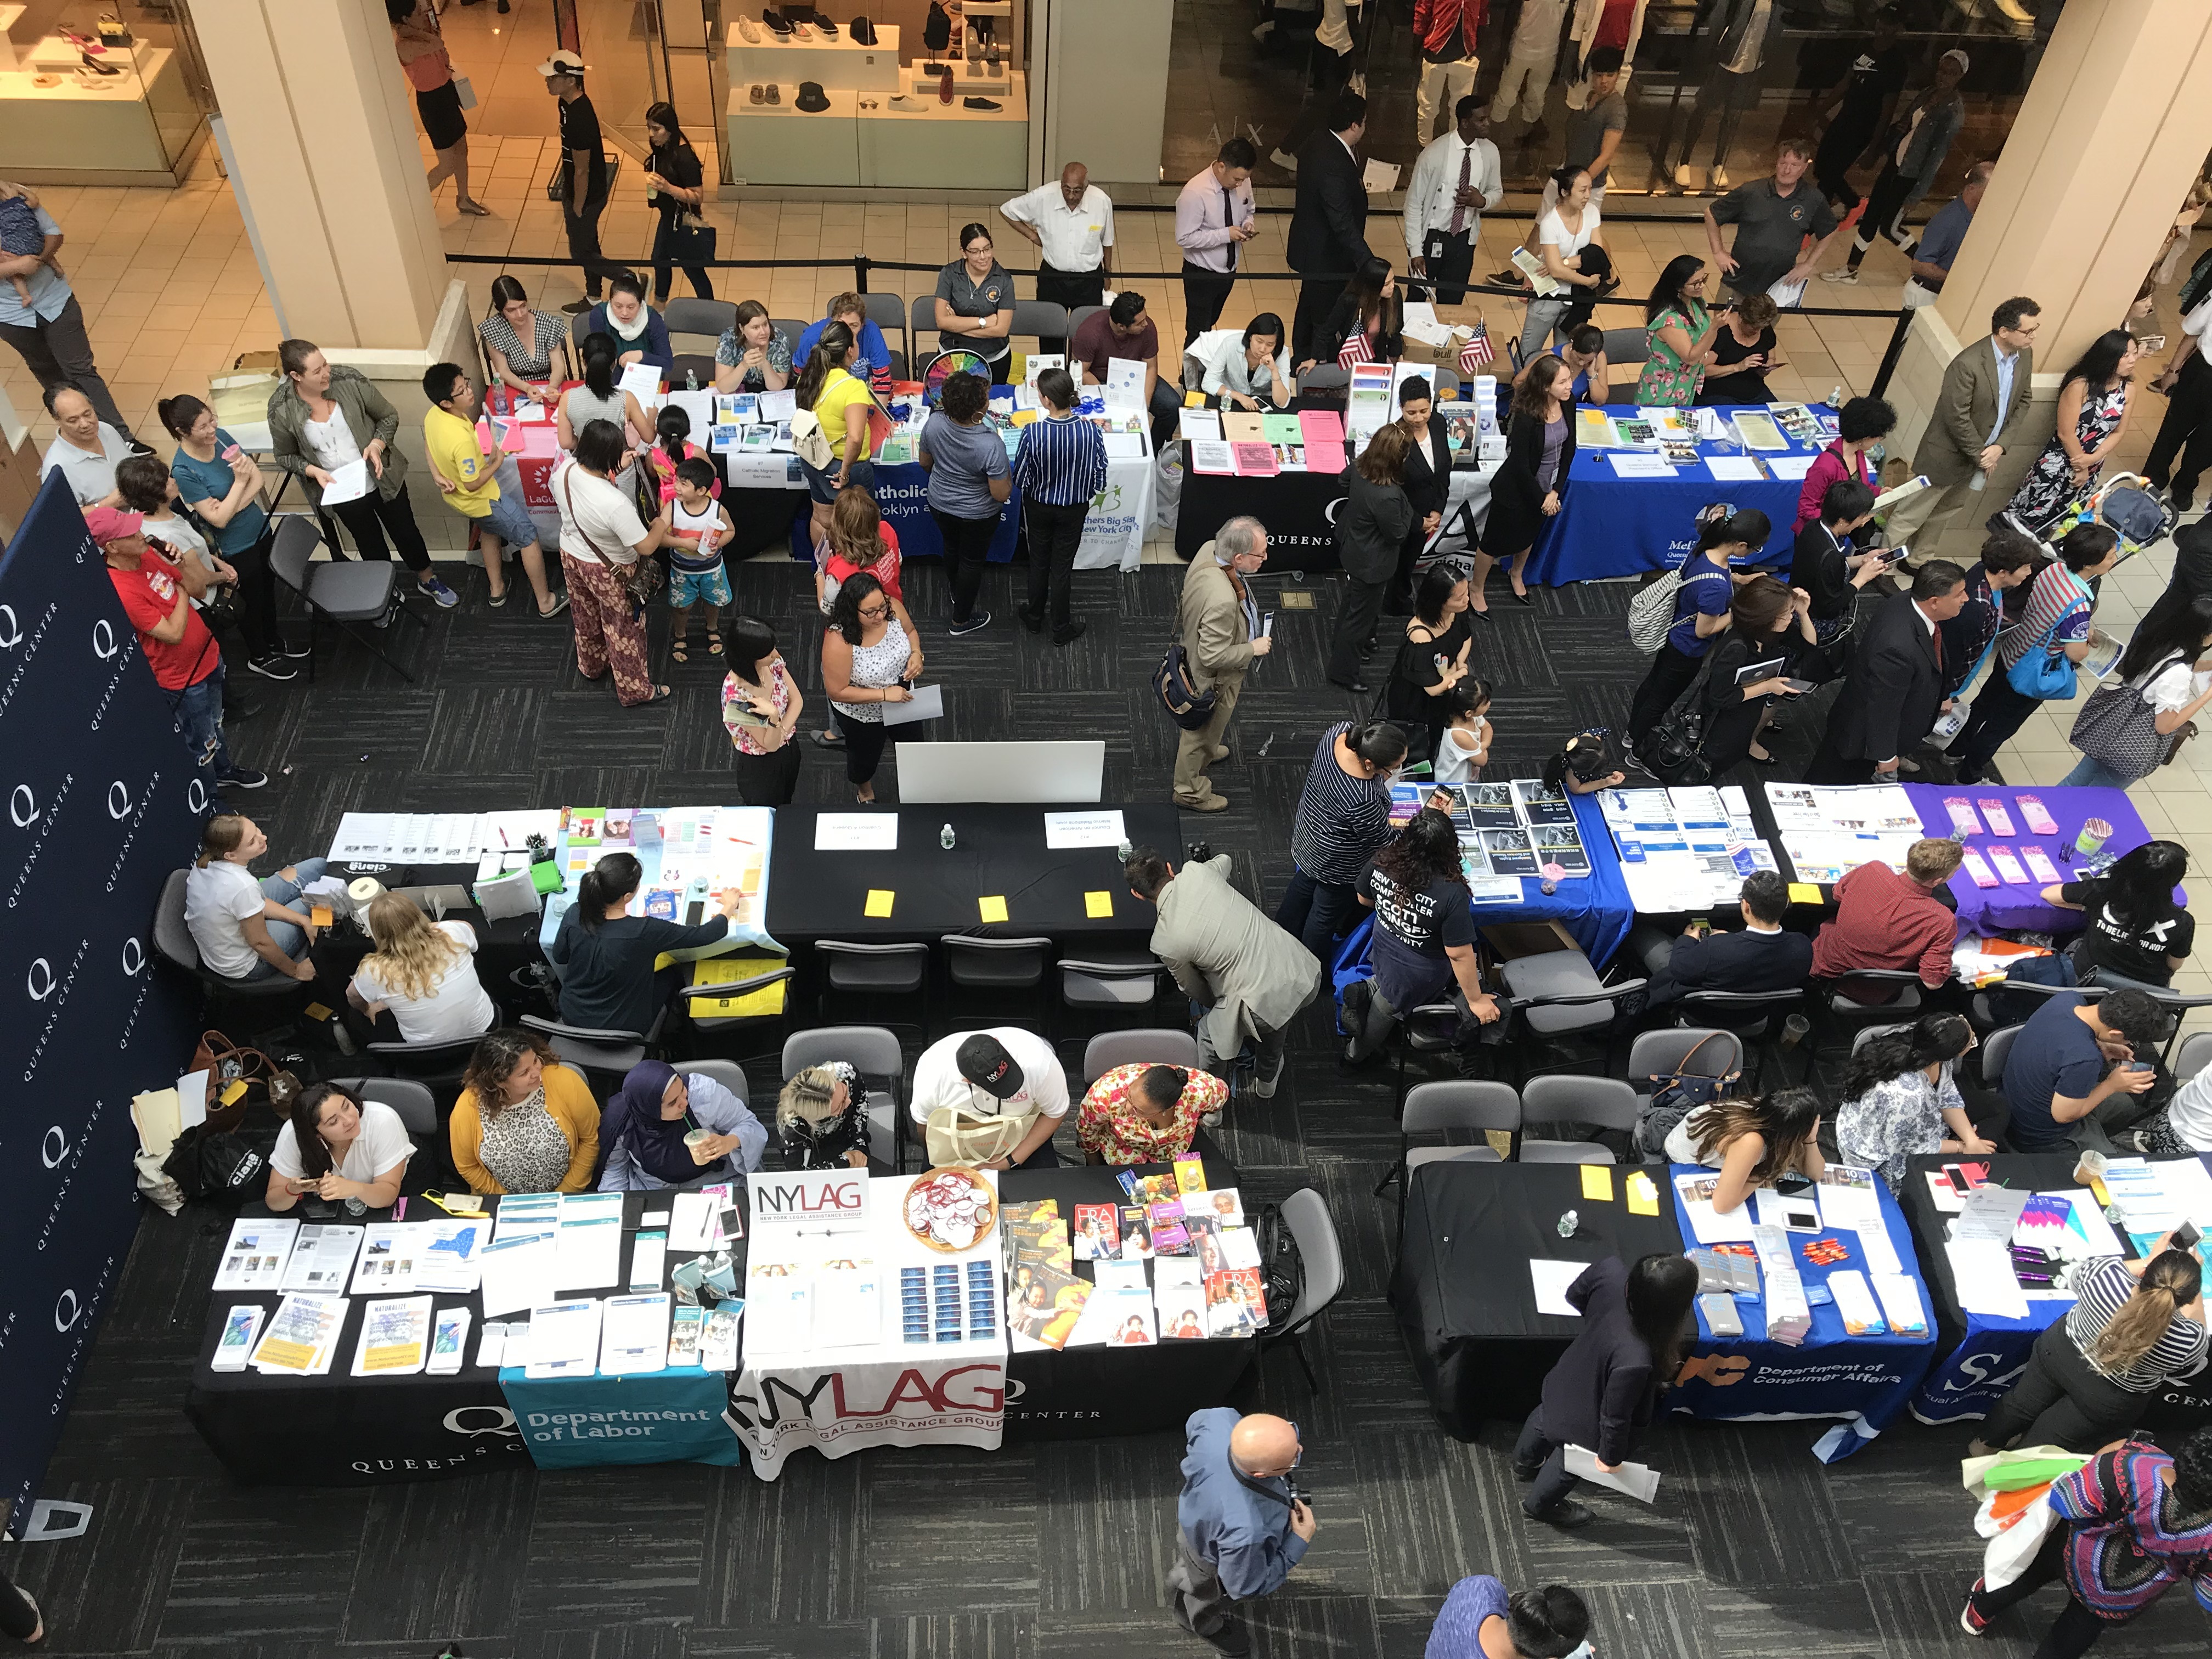 Queens Immigrants Attend Resource Fair and Legal Clinic